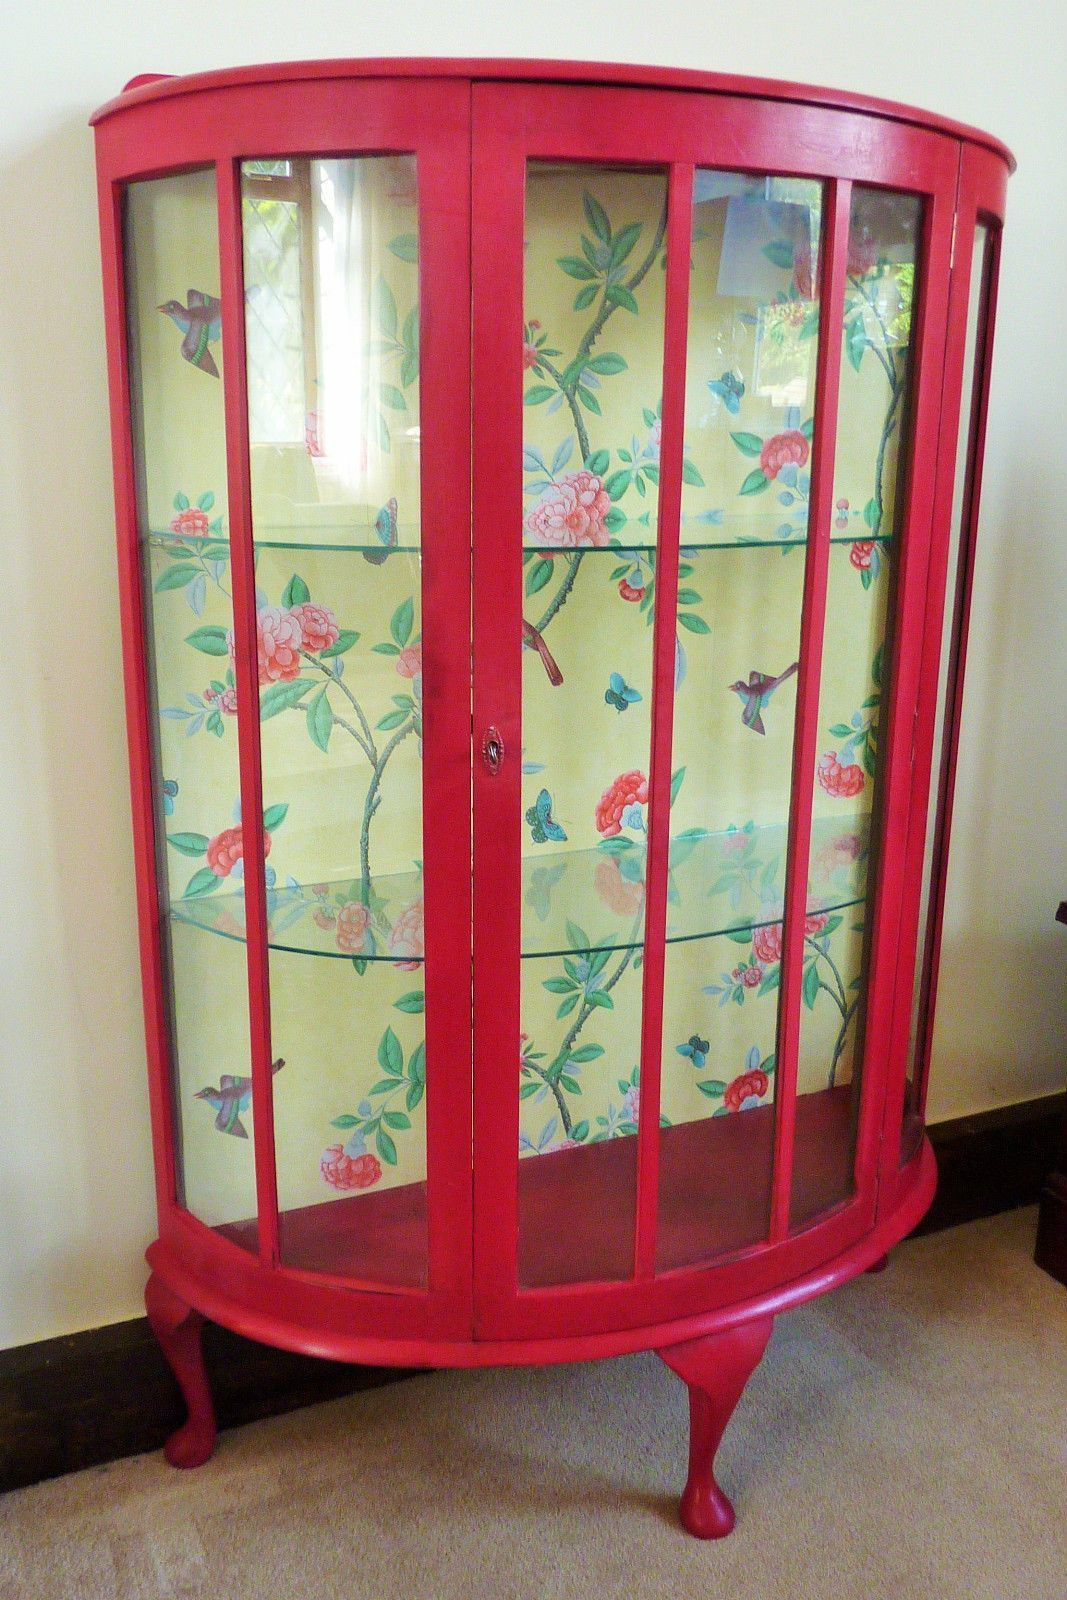 50+ Second Hand Display Cabinets - Backsplash for Kitchen Ideas Check more at  & 50+ Second Hand Display Cabinets - Backsplash for Kitchen Ideas ...